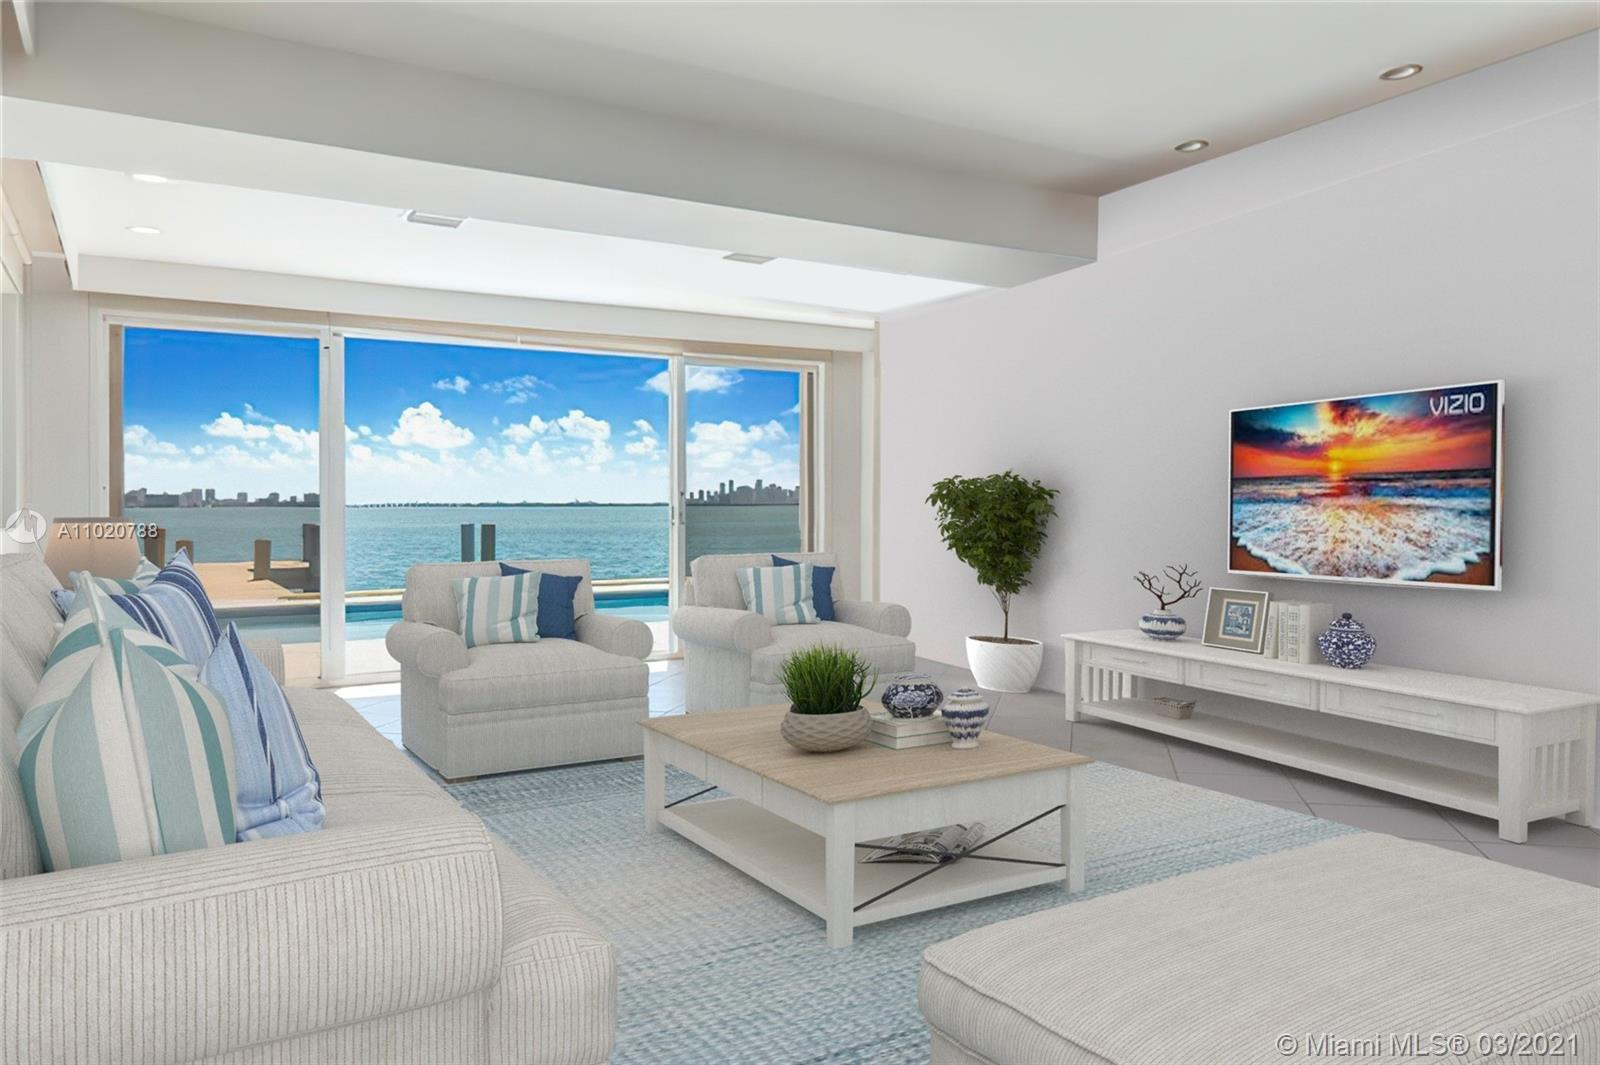 Isle of Normandy - 1820 Bay Dr, Miami Beach, FL 33141